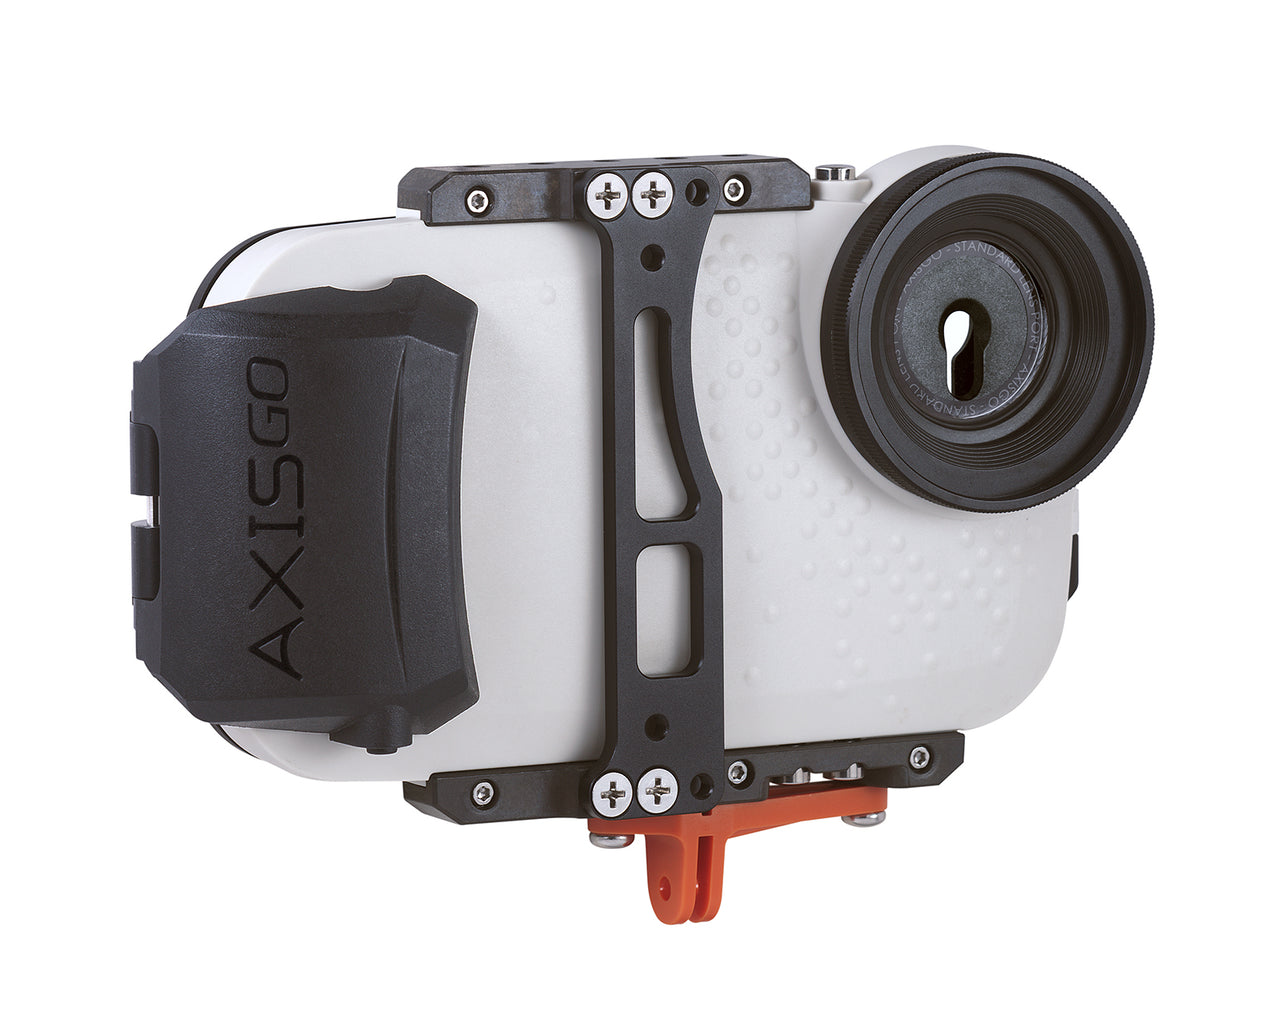 iPhone water housing mounting kit - AxisGO